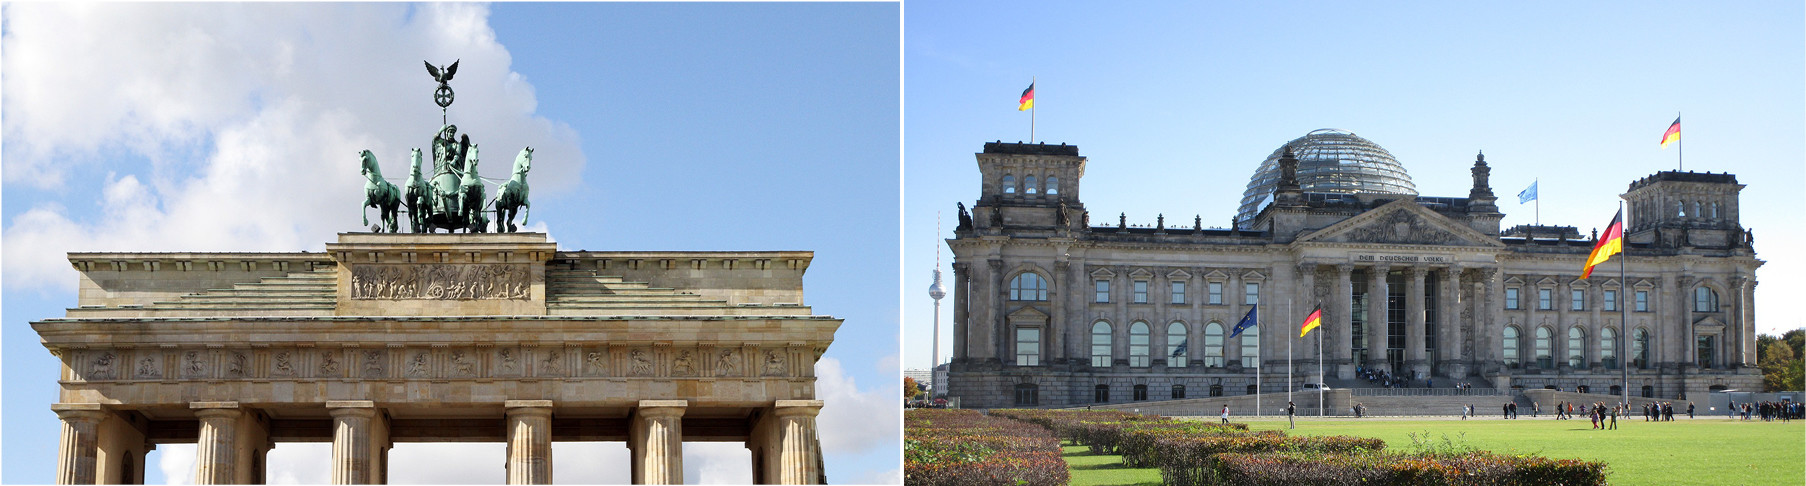 Brandenburg-Gate-Reichstag-Building